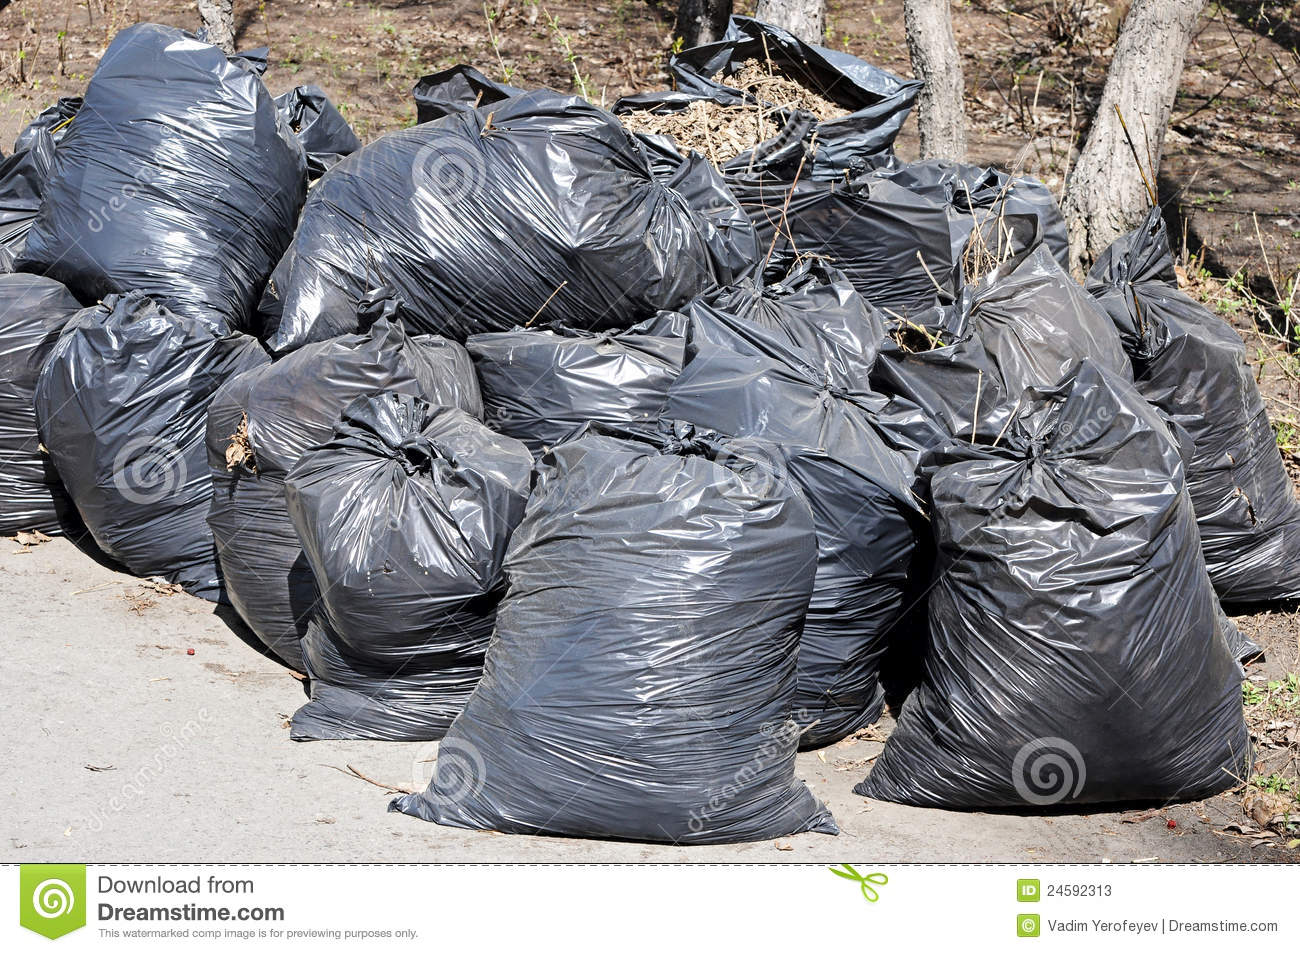 A Pile Of Black Garbage Plastic Bags Stock Photos - Image ...